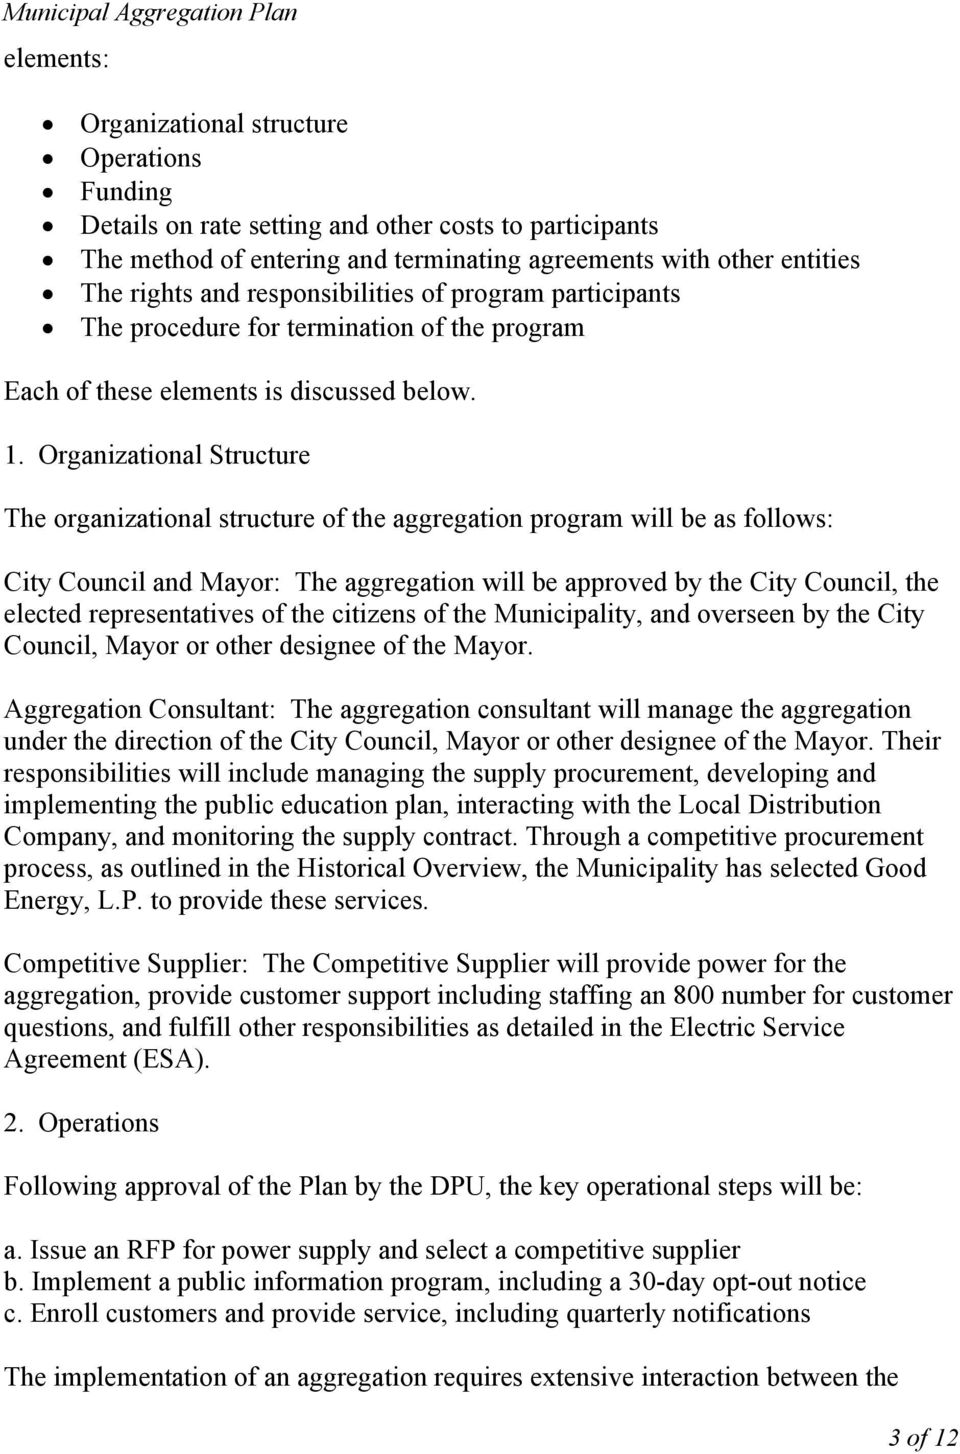 Organizational Structure The organizational structure of the aggregation program will be as follows: City Council and Mayor: The aggregation will be approved by the City Council, the elected